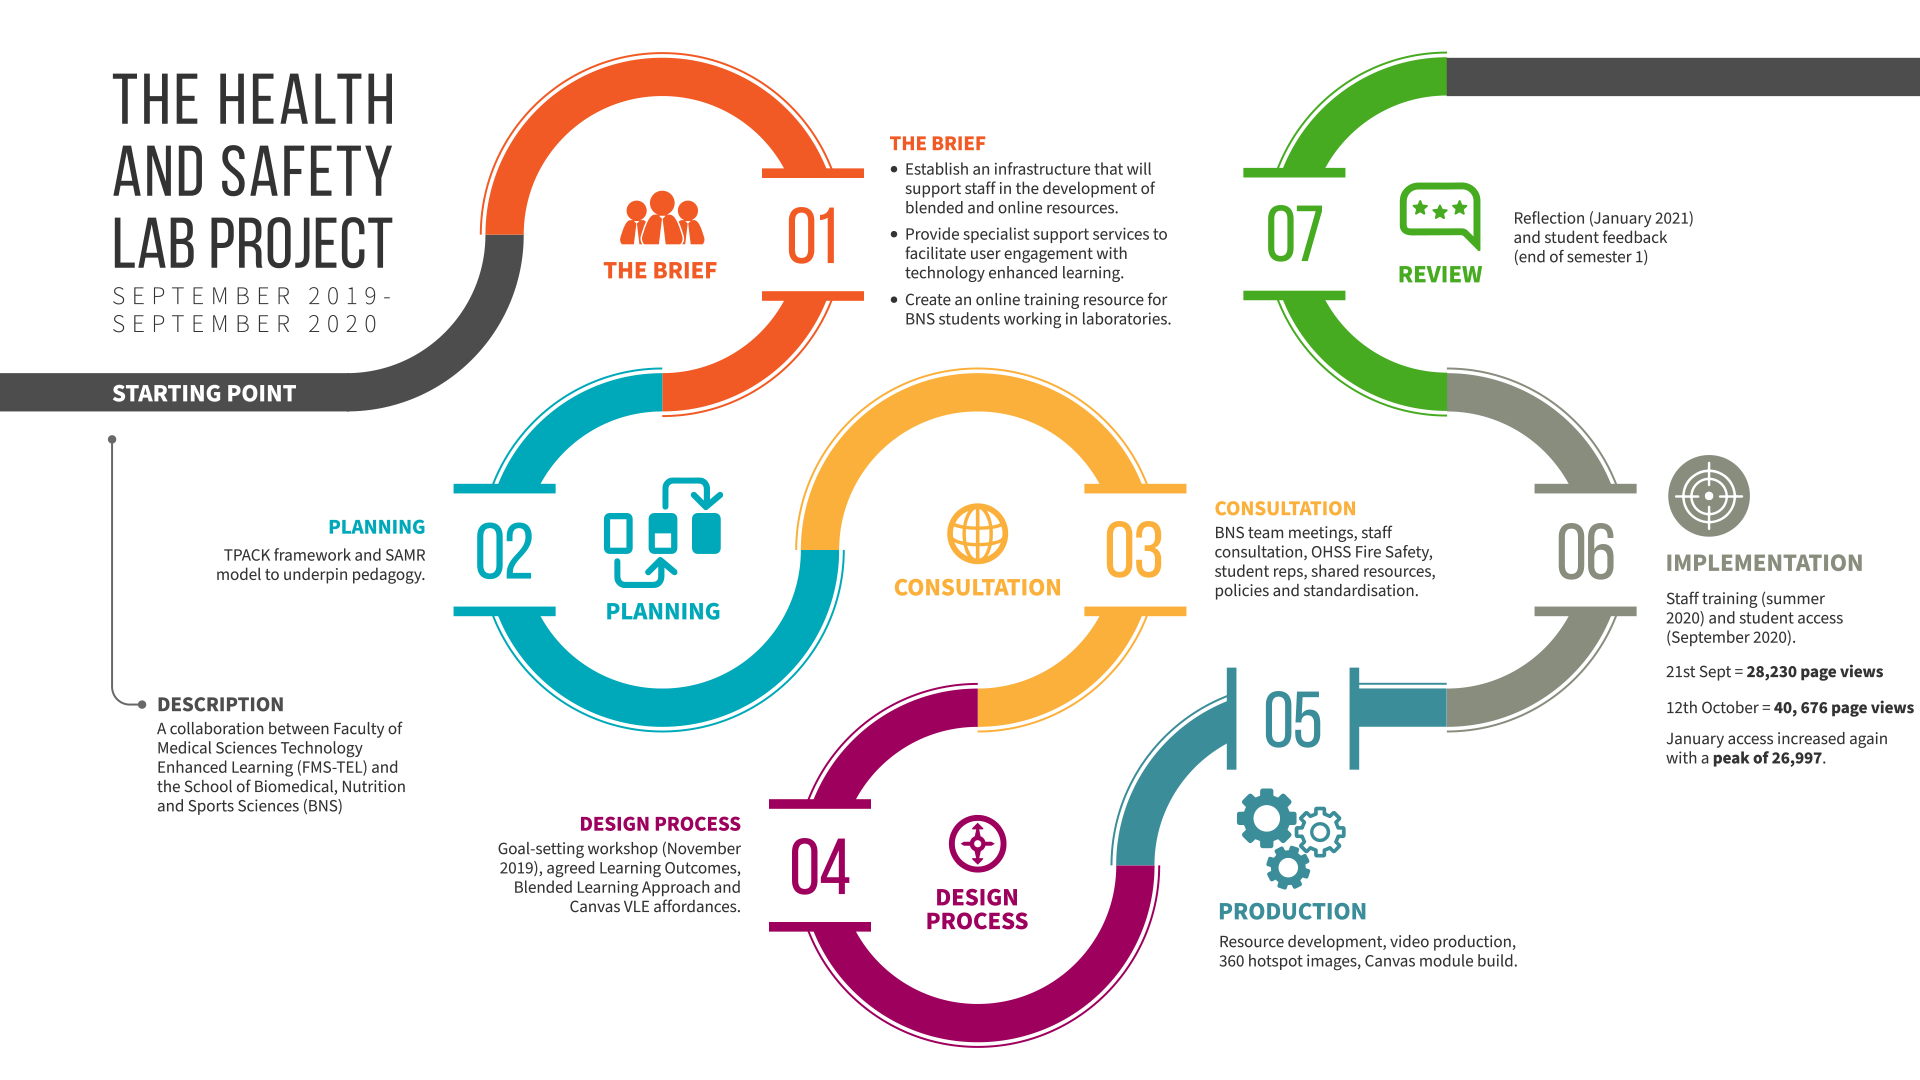 An overview of the project roadmap including project brief, design process and consultations.